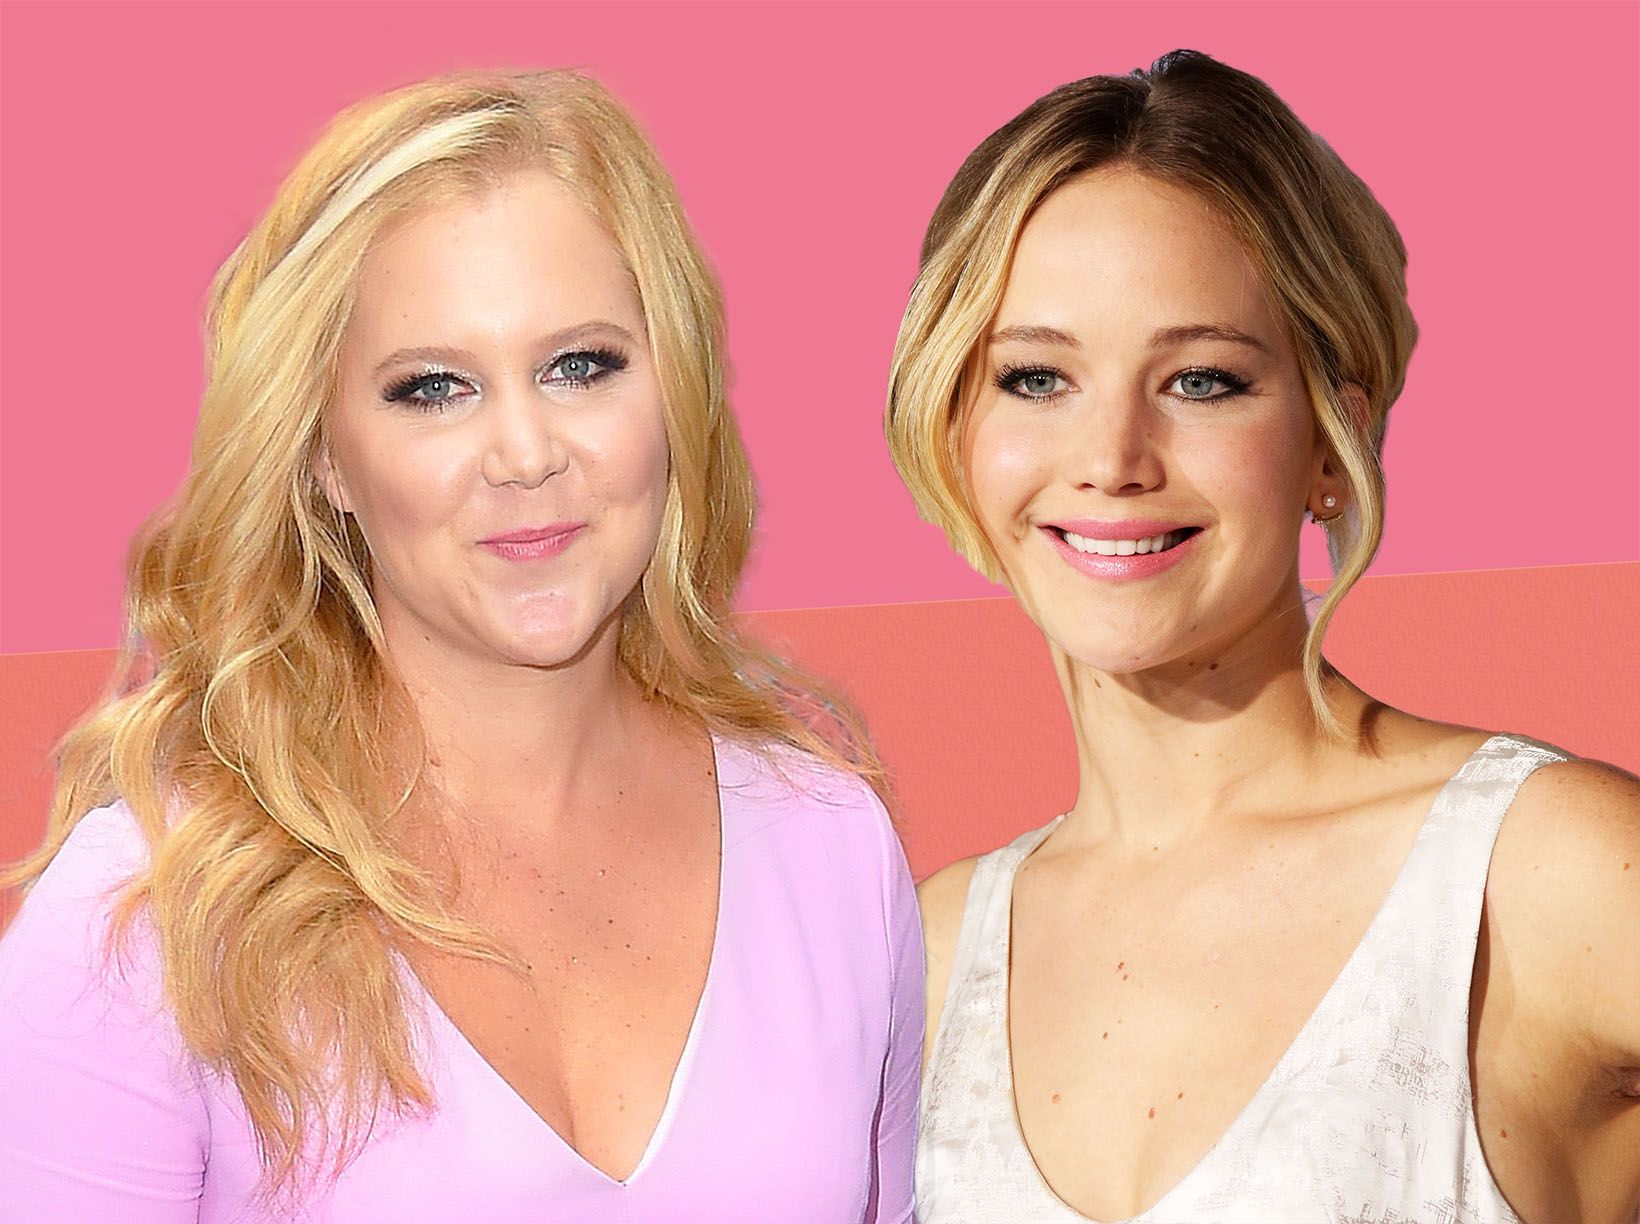 Jennifer Lawrence to star in a movie with her new BFF Amy Schumer